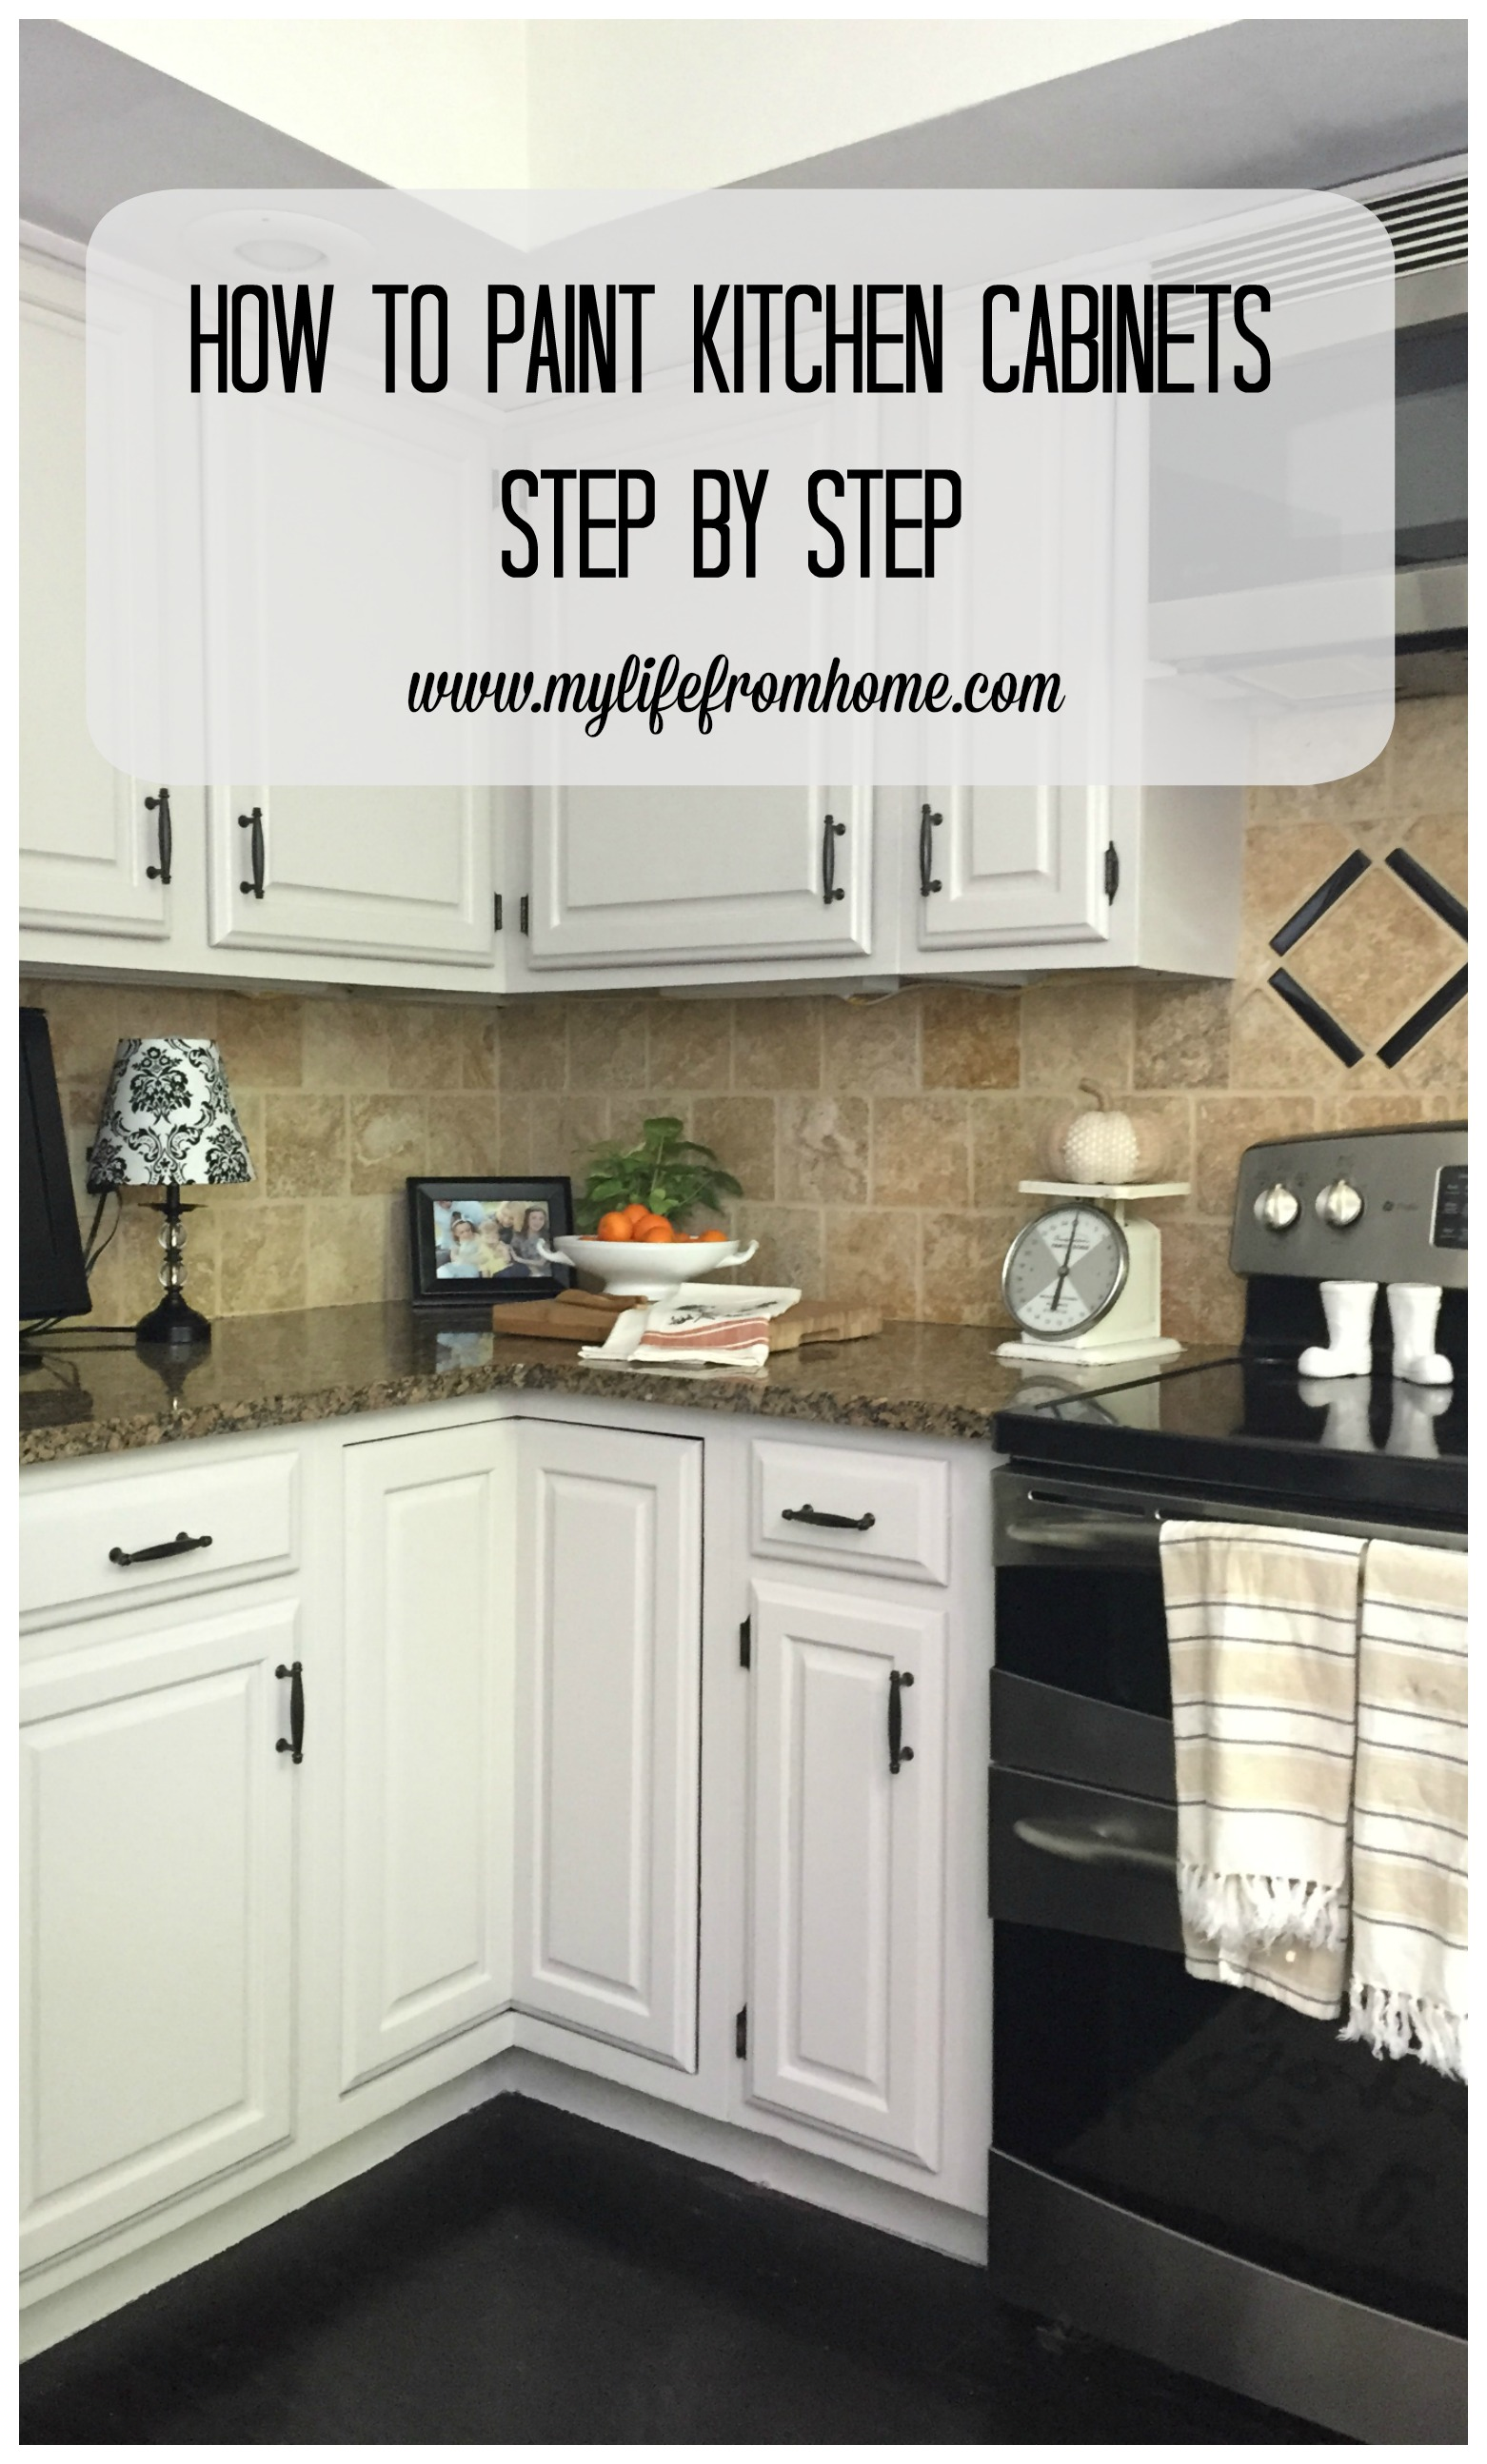 How to Paint Kitchen Cabinets Step by Step by www.mylifefromhome.com paint painted cabinets kitchen cabinet painting DIY painted cabinets